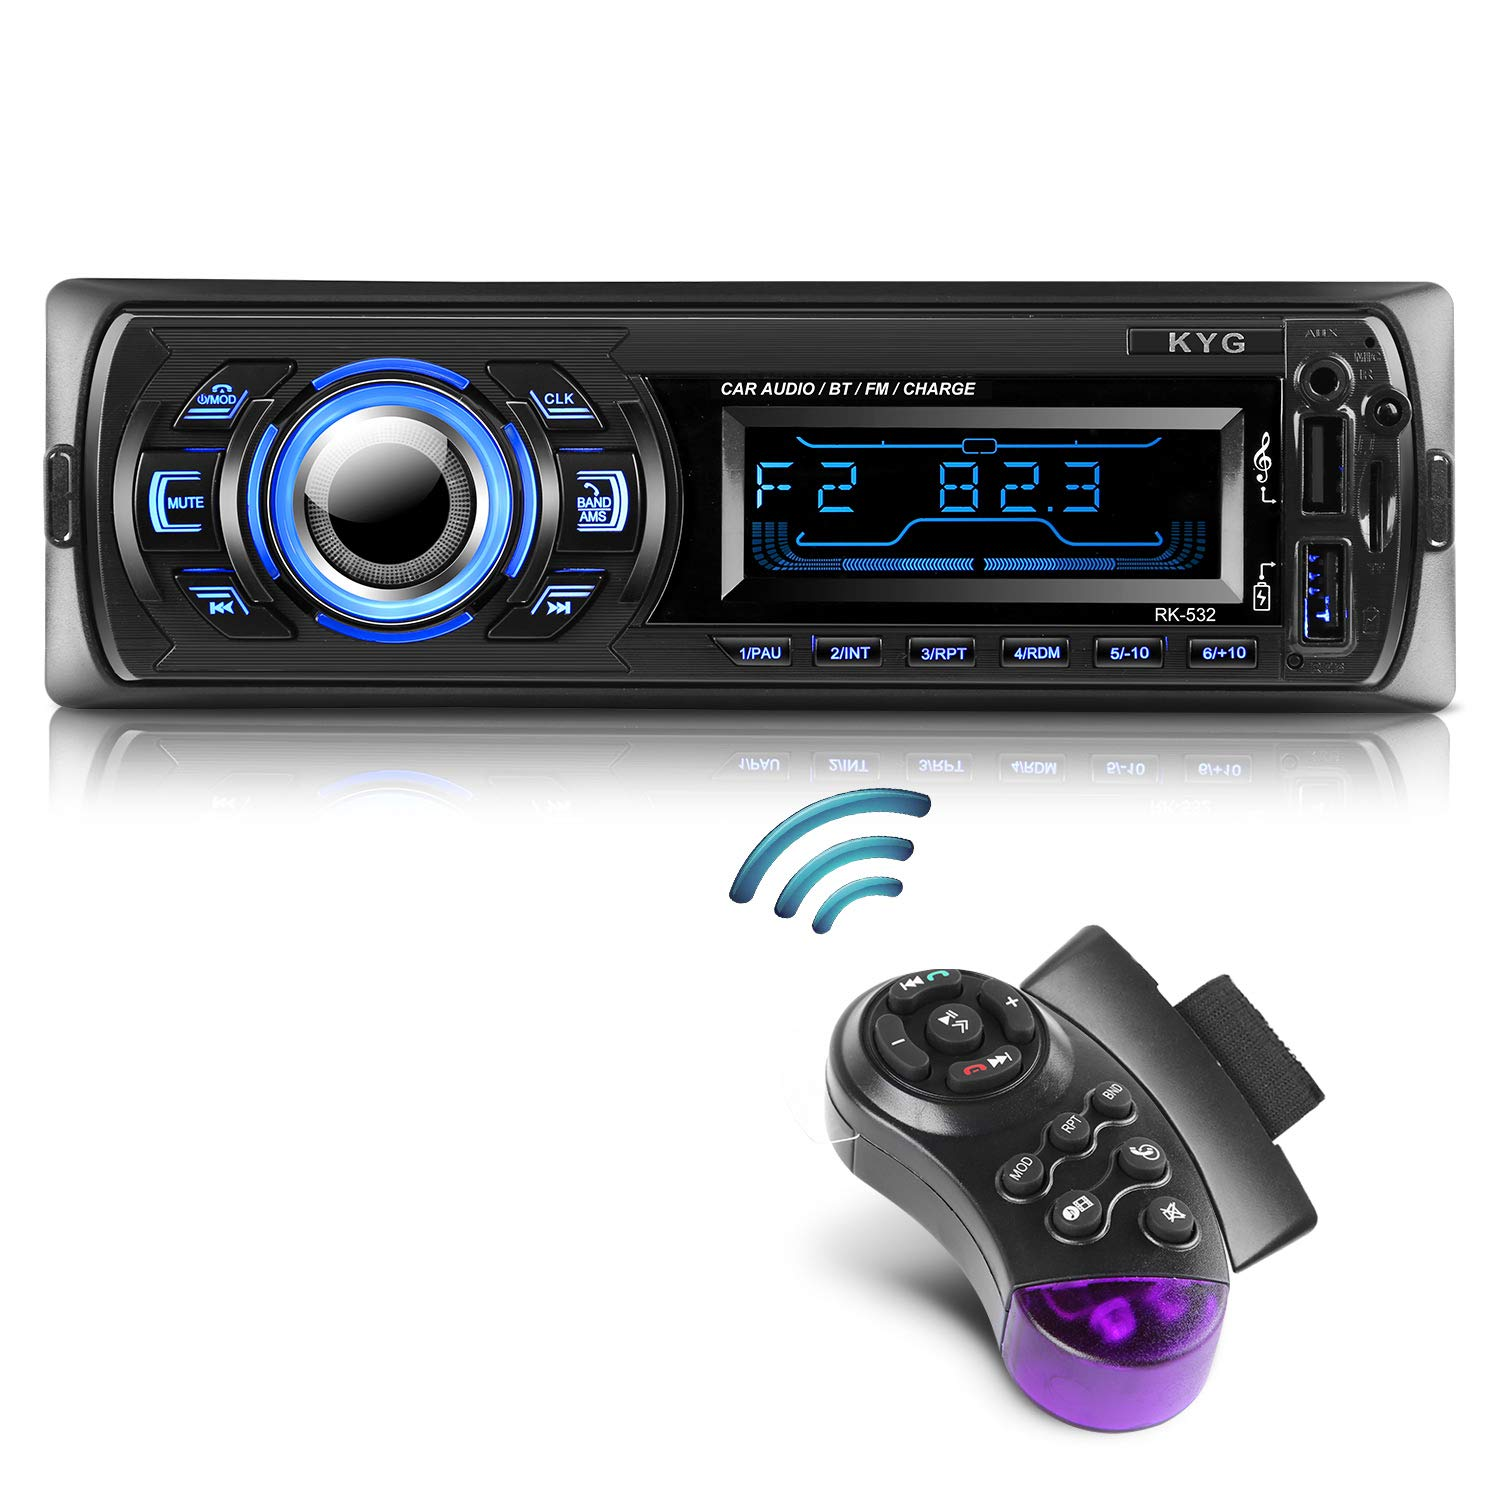 Autoradio Bluetooth Main Libre KYG Radio Voiture avec 2 Ports USB et MMC Card Slot, Supporte Max 32G de Mémoire Lecteur FM/MP3/ USB/SD/WMA/AUX/Télécommande, 7 Couleurs d'éclairage product image